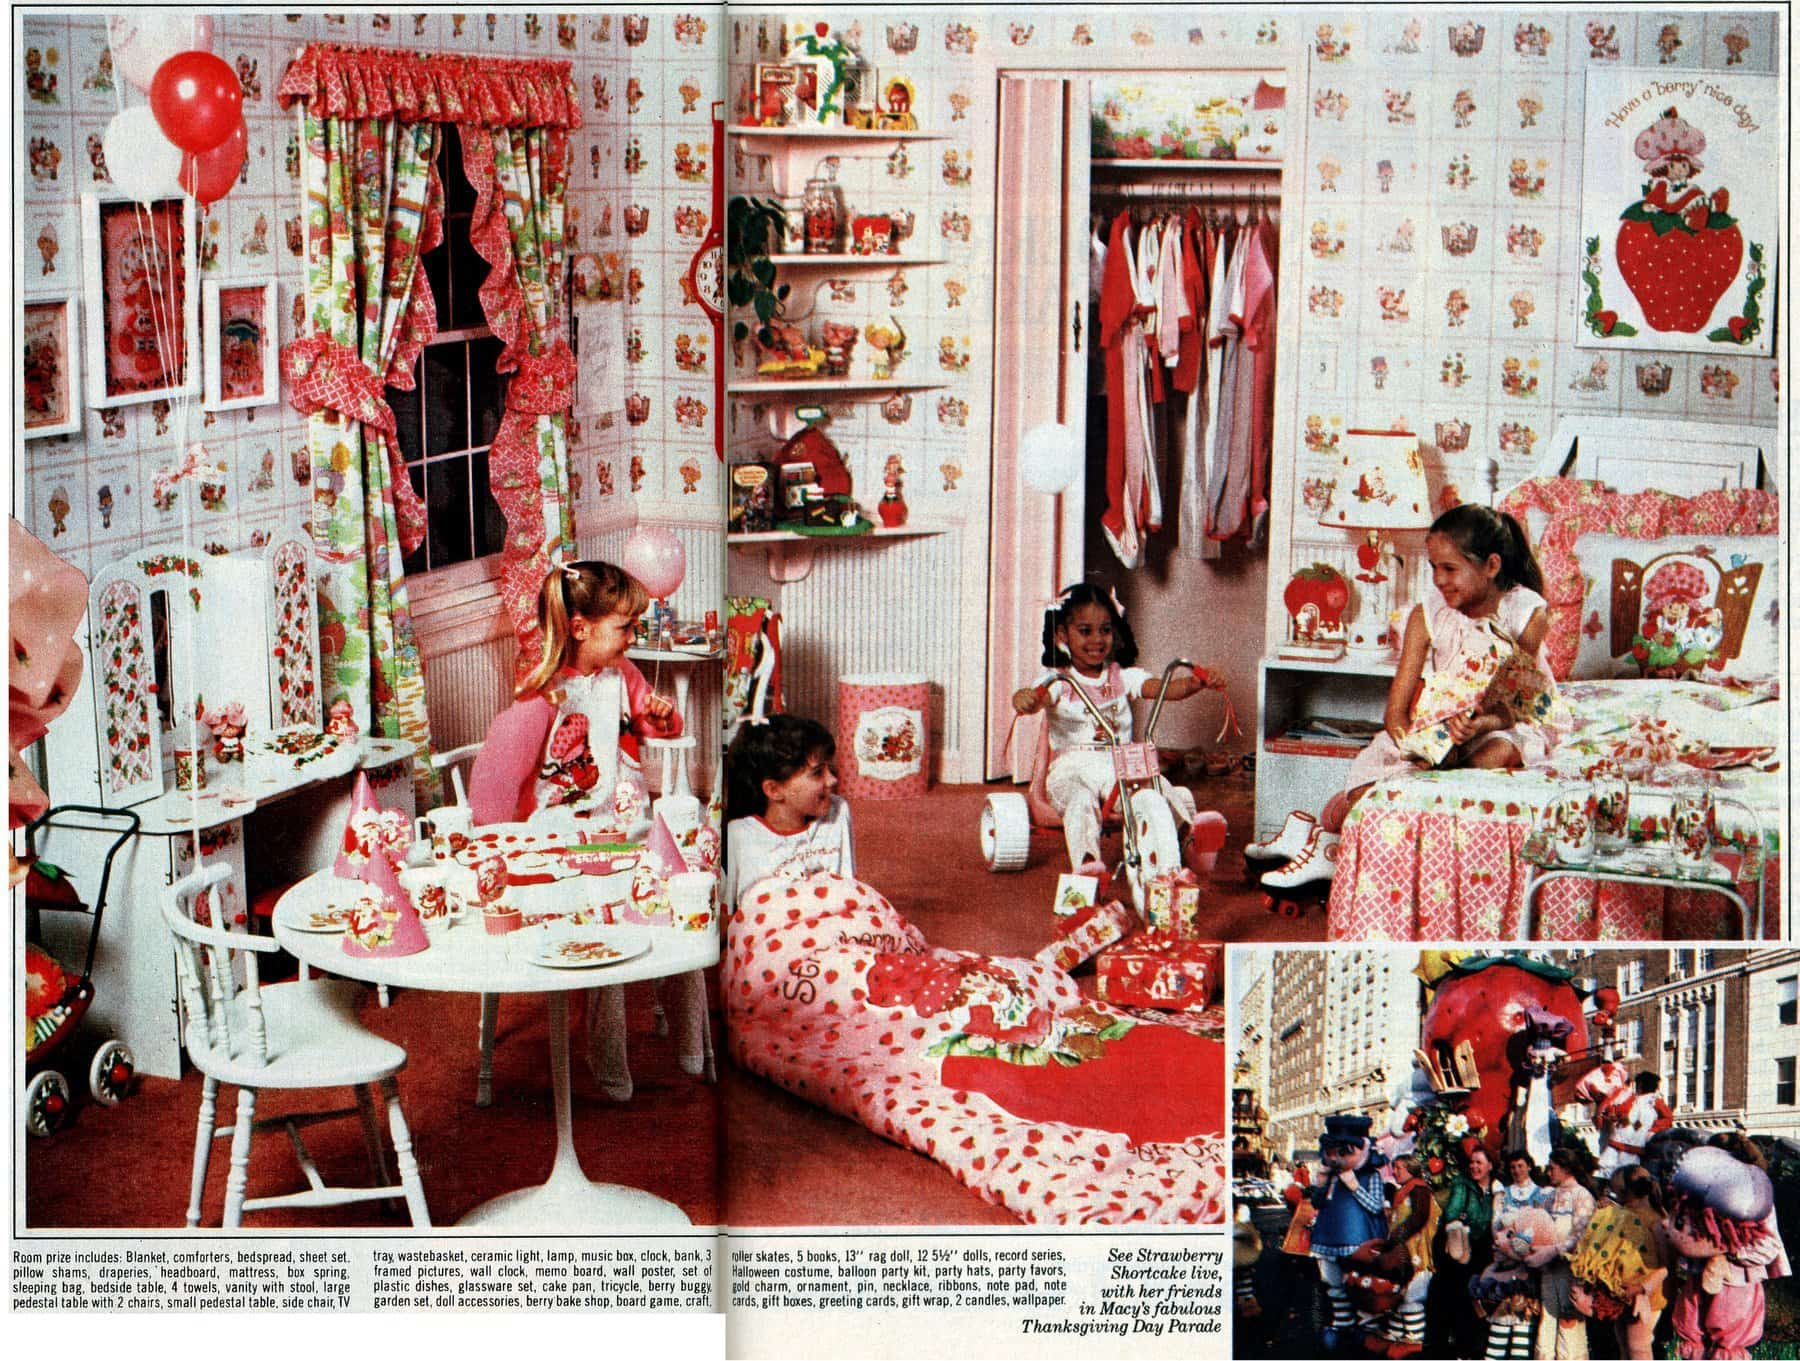 The ultimate over-the-top Strawberry Shortcake room makeover